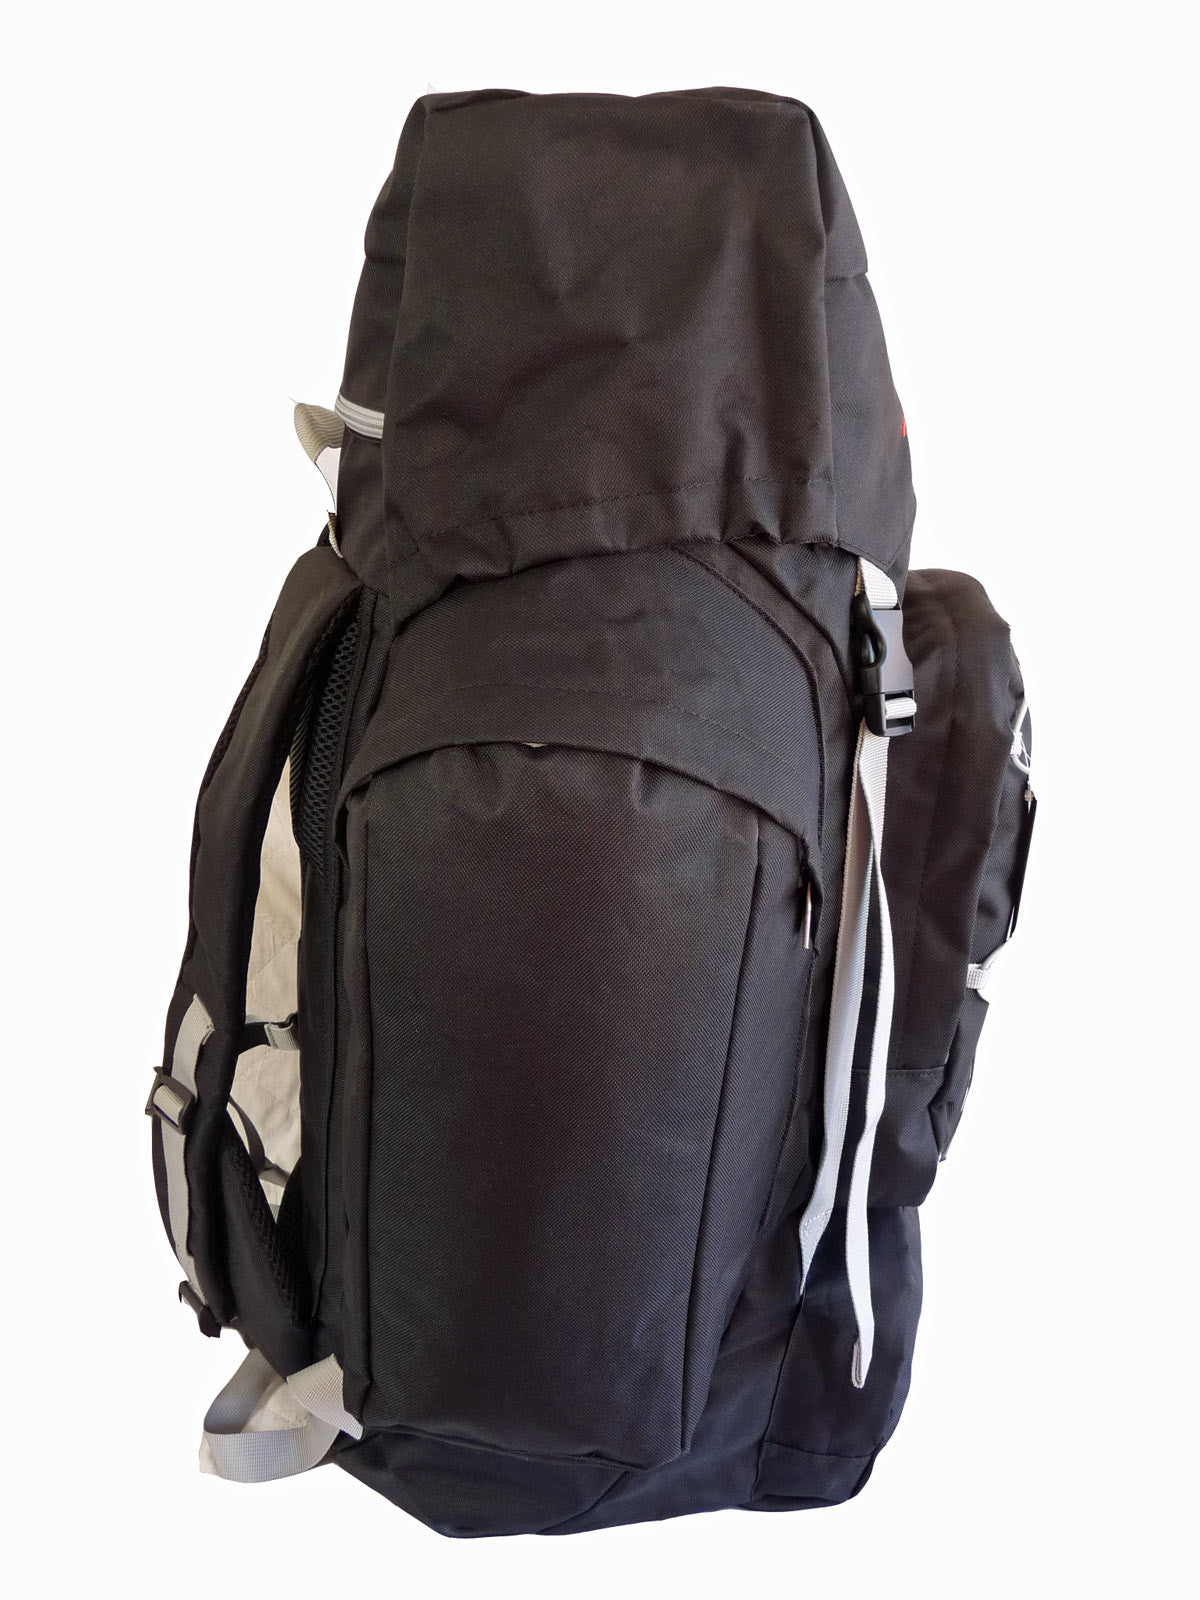 80 100 125 litre backpack black end view